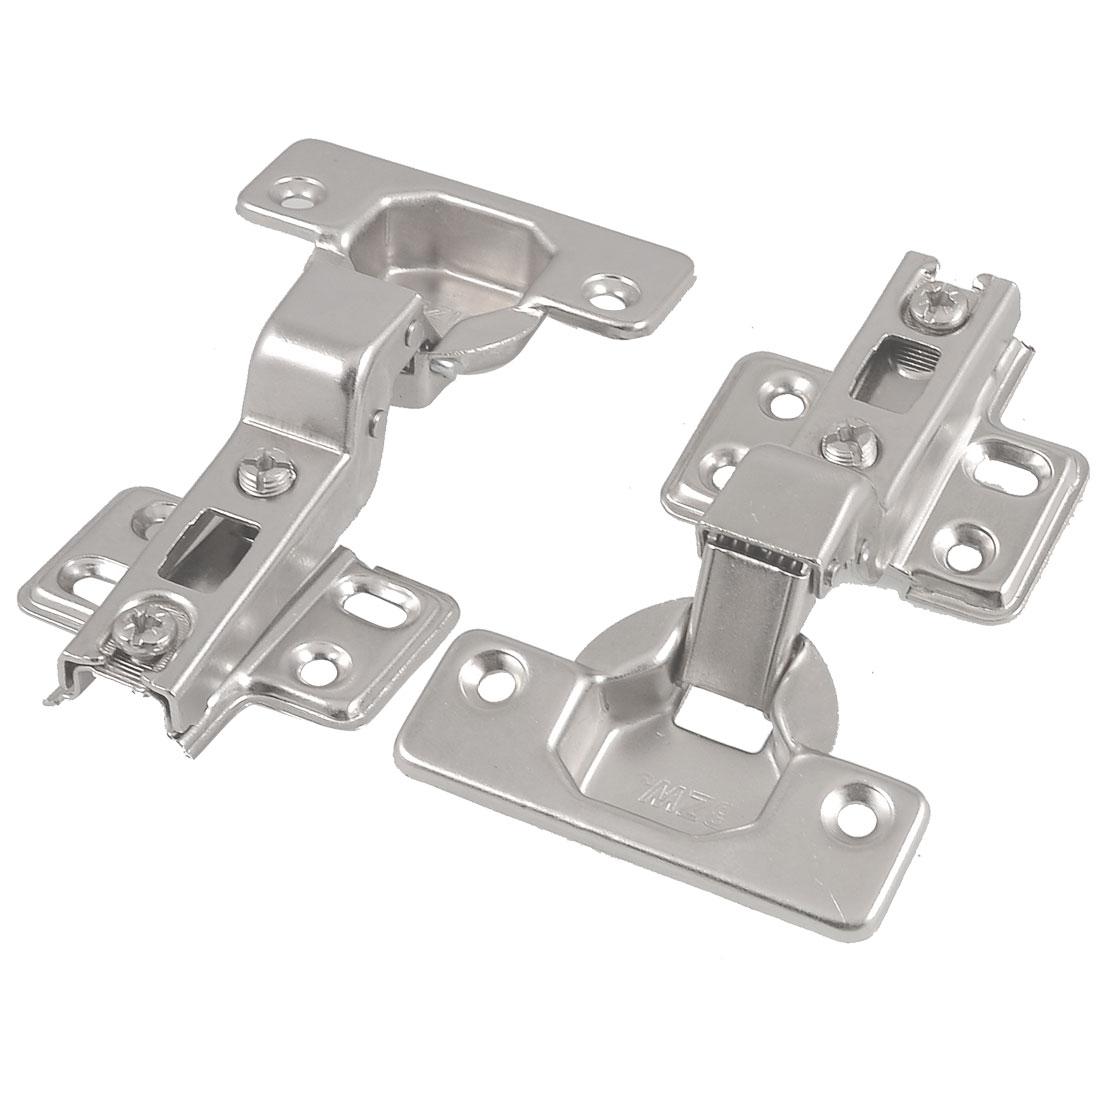 Furniture Hardware Buffer Metal Concealed Cabinet Hinge 2 Pcs w Screws